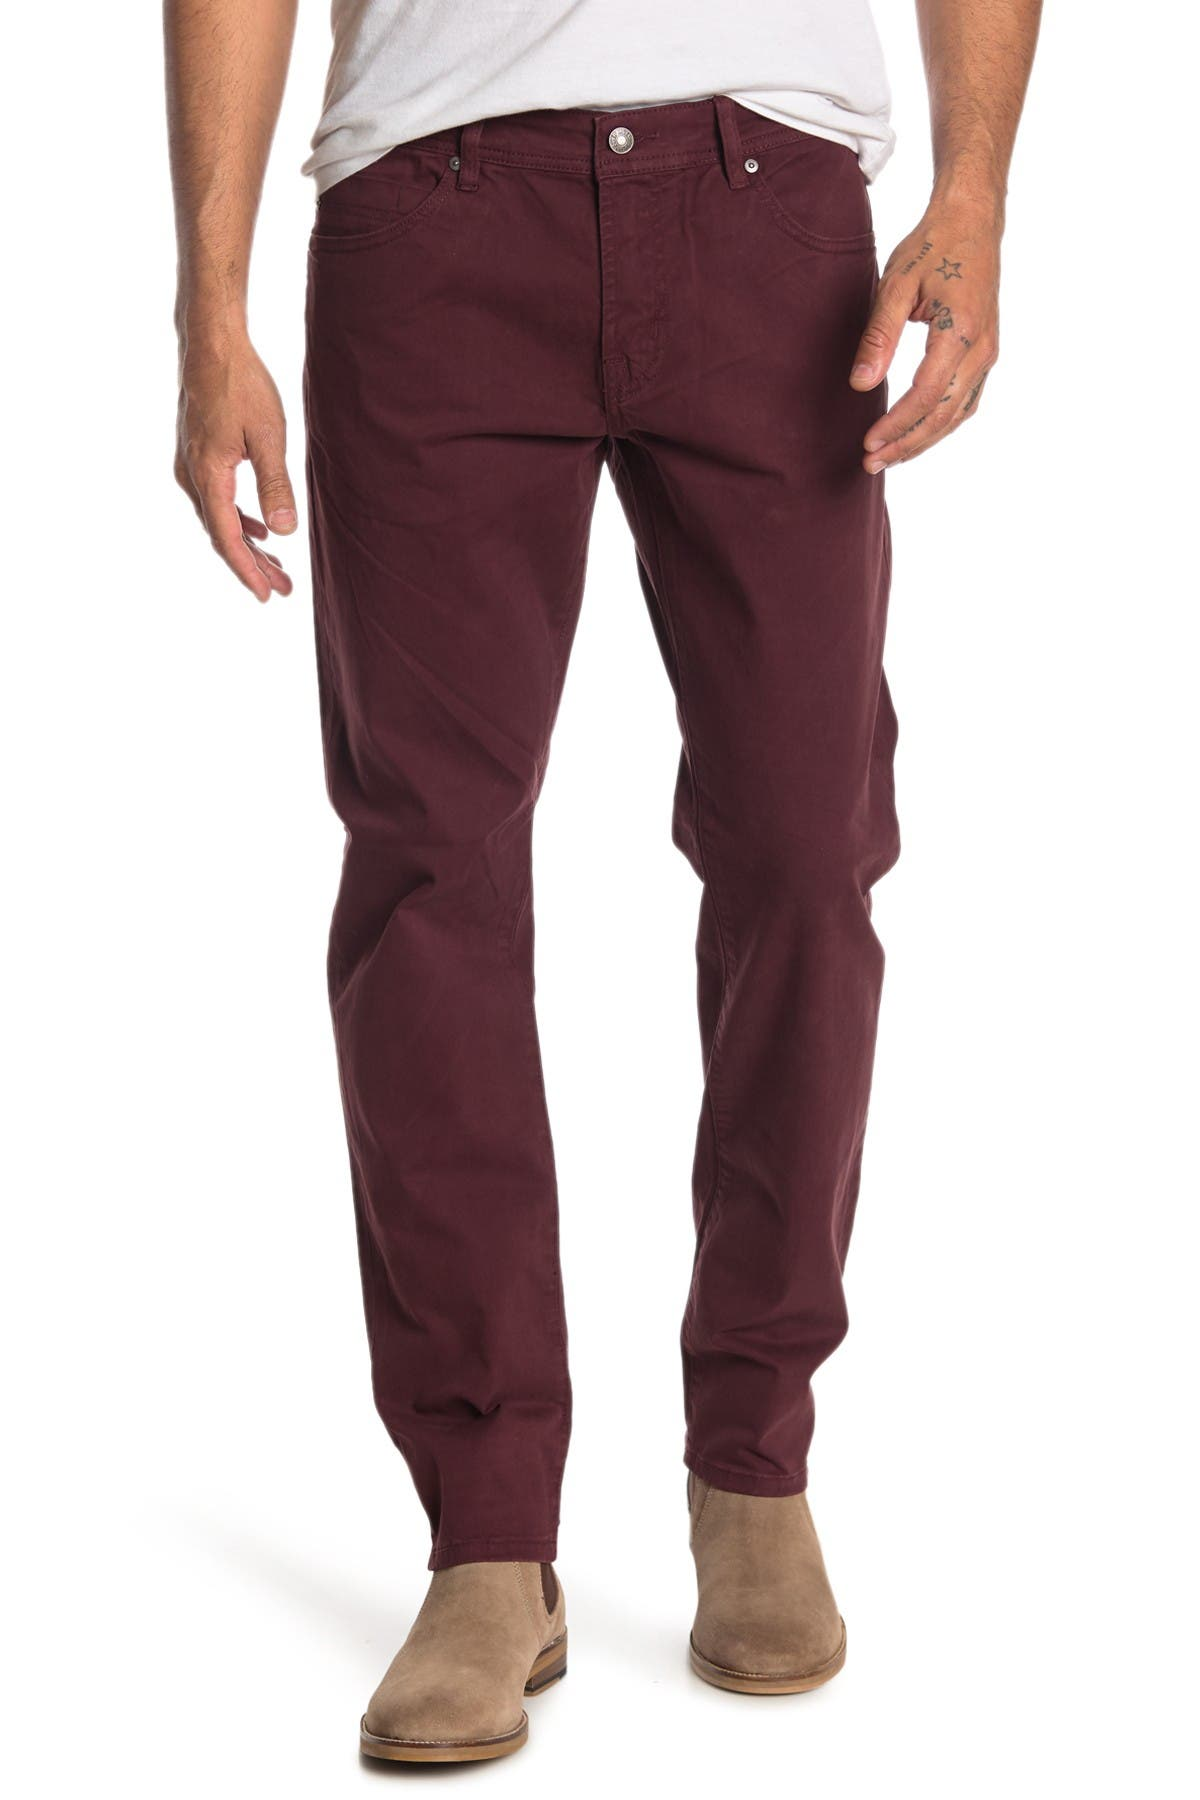 Image of Liverpool Jeans Co Kingston Modern Slim Straight Twill Pants